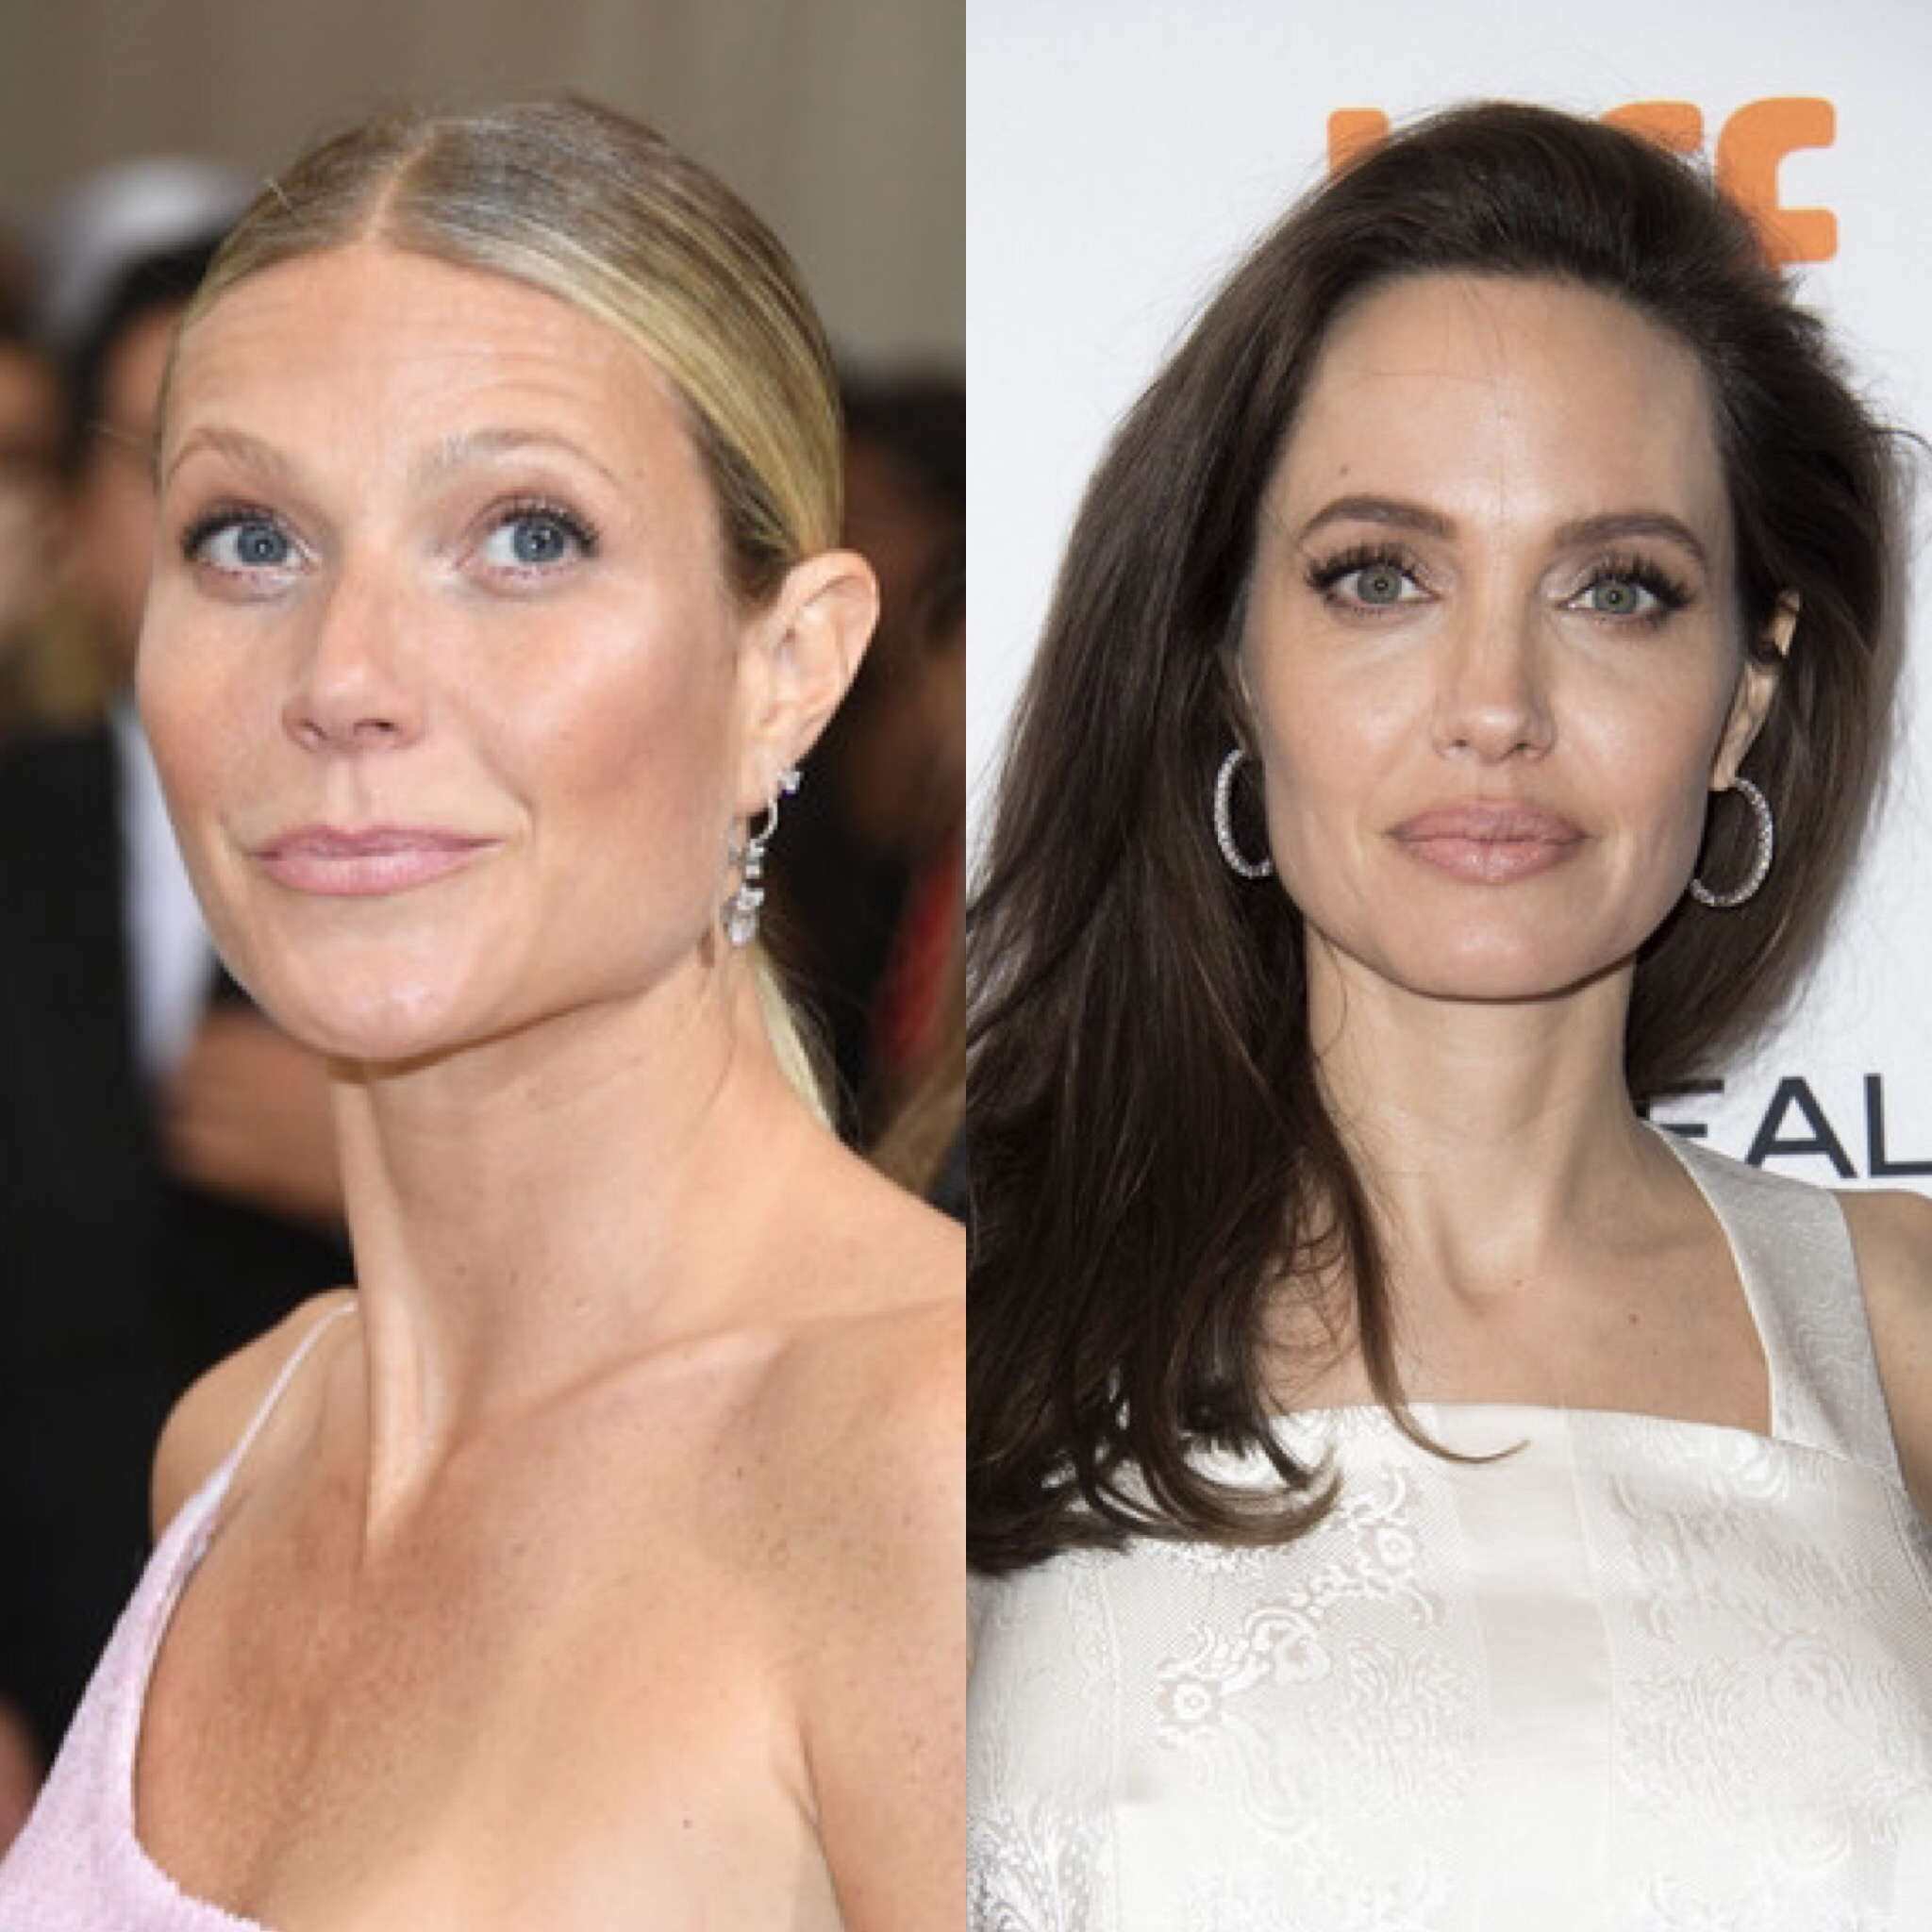 Gwenyth Paltrow (L) and Angelina Jolie